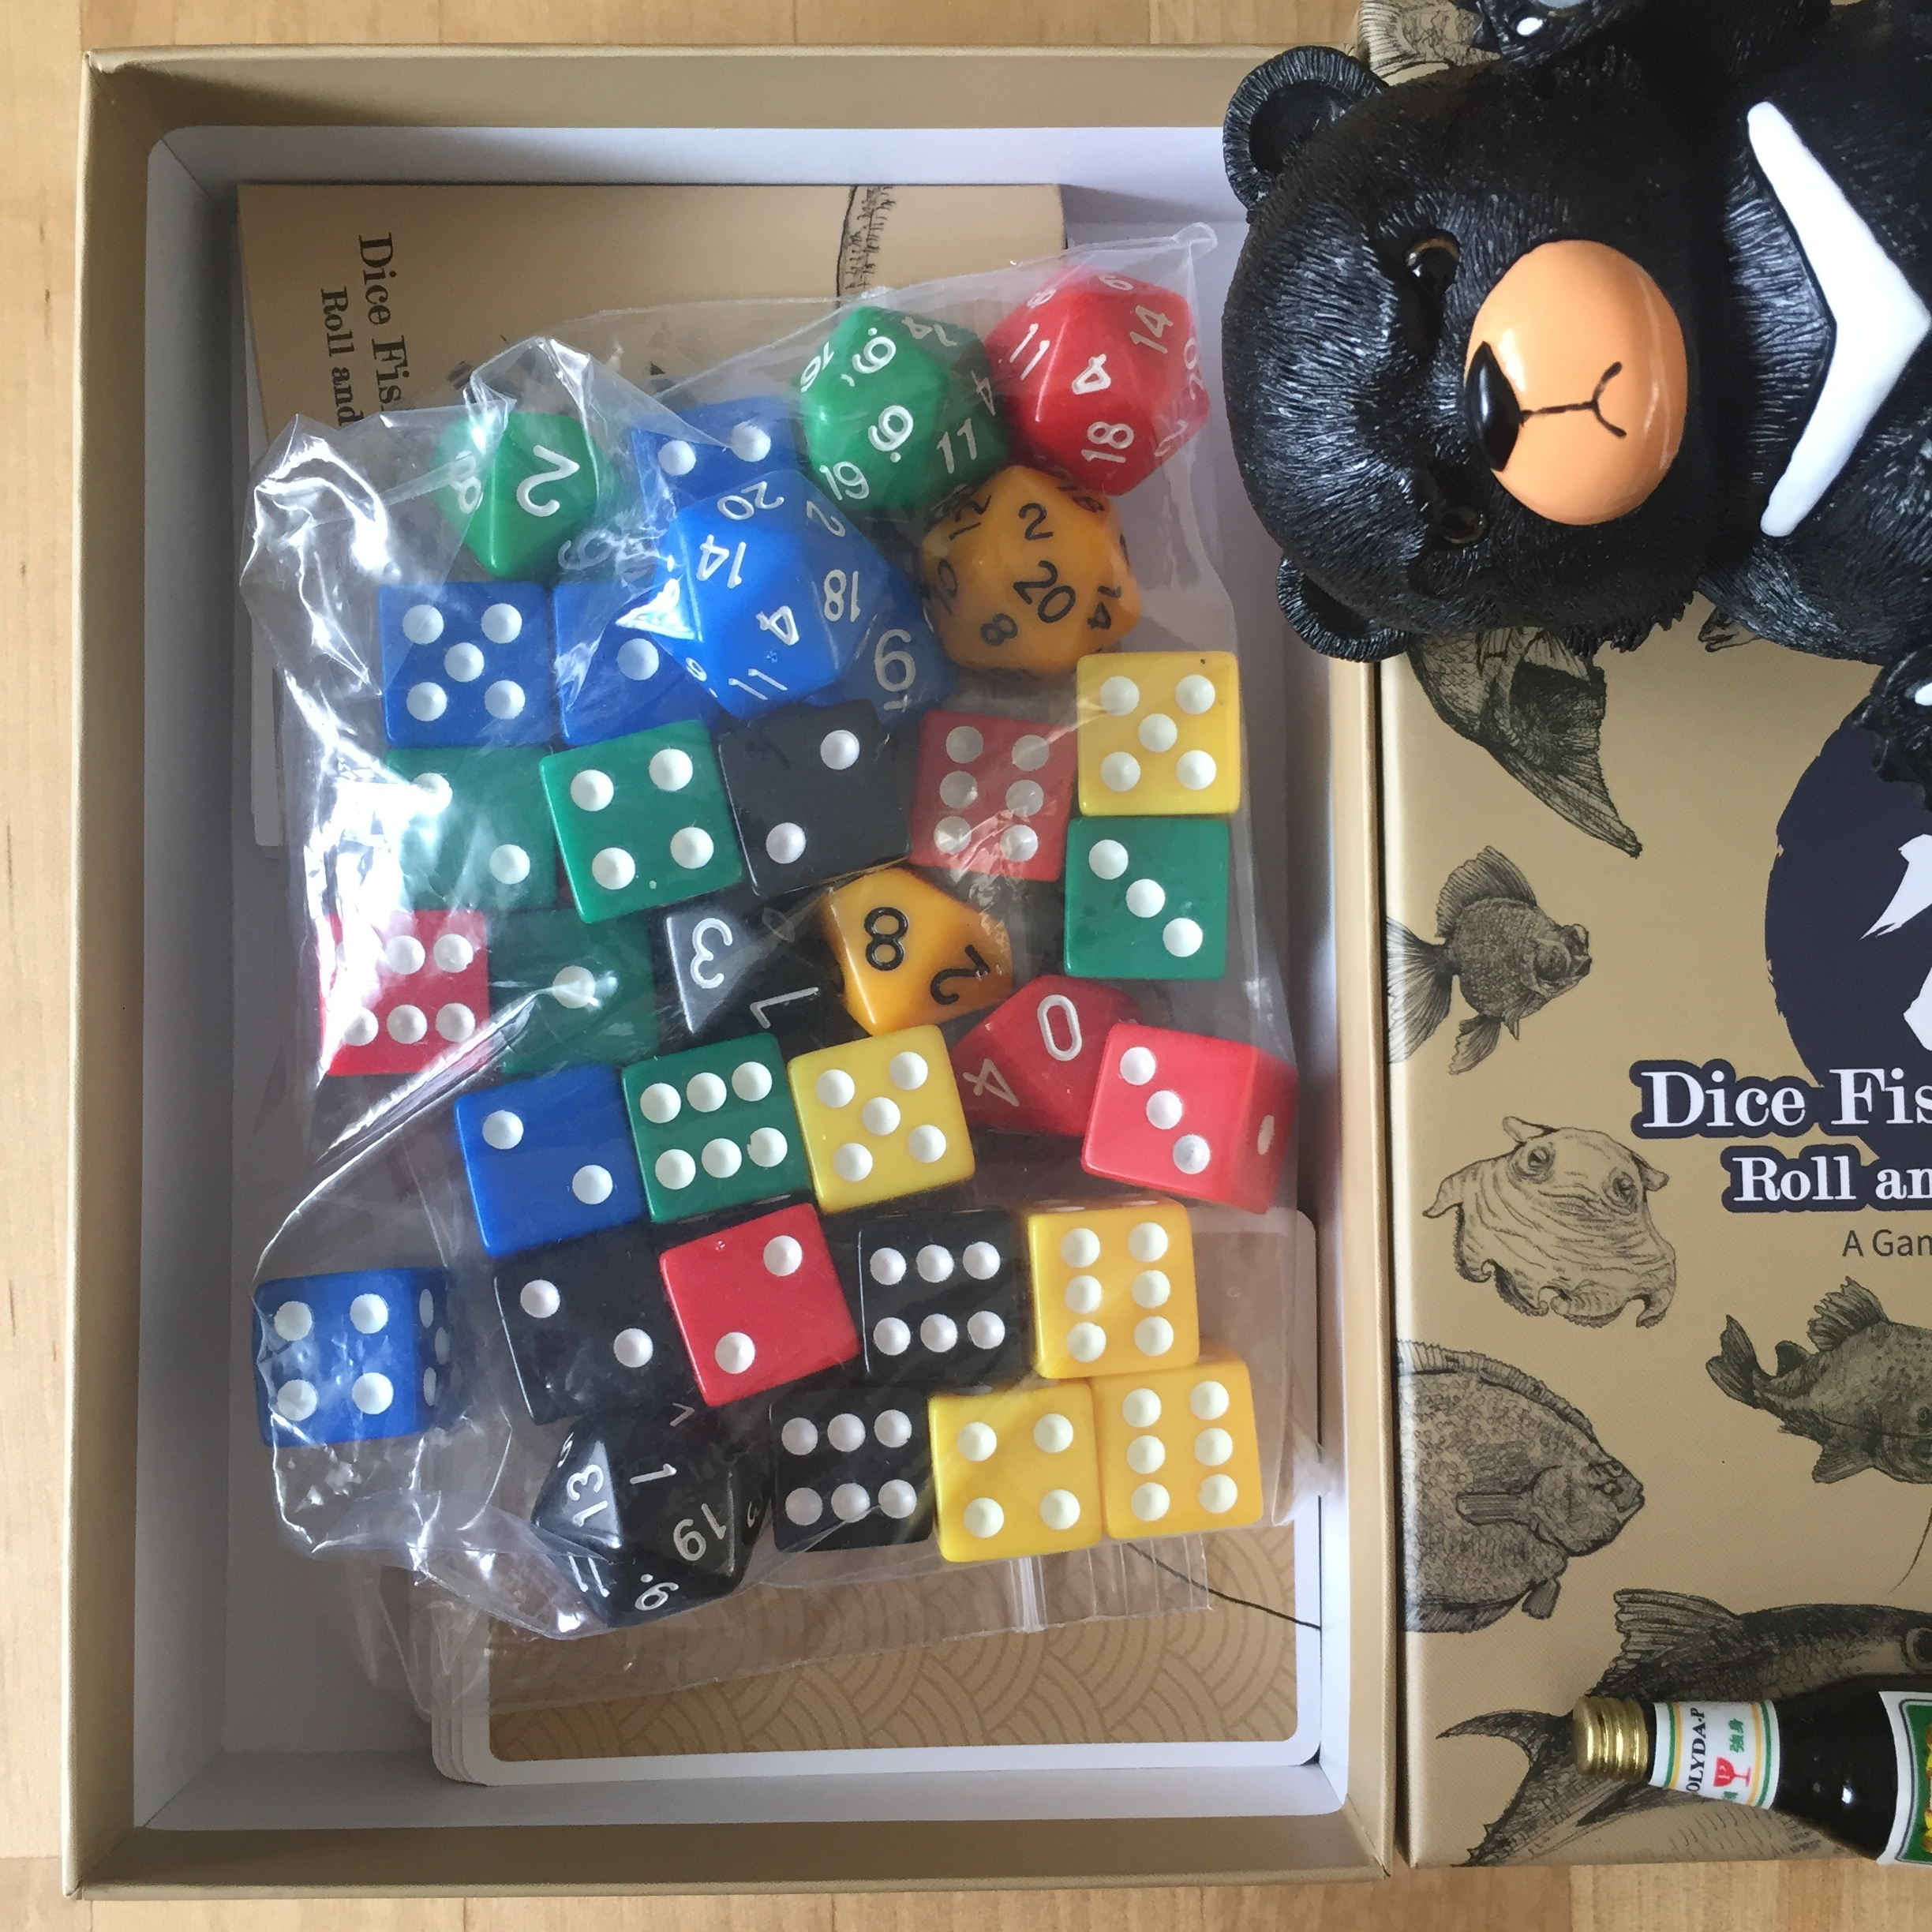 Even if you end up not liking the game, you'll still have a TON of dice: 25 d6s, 5 d10s, and 5 d20s!